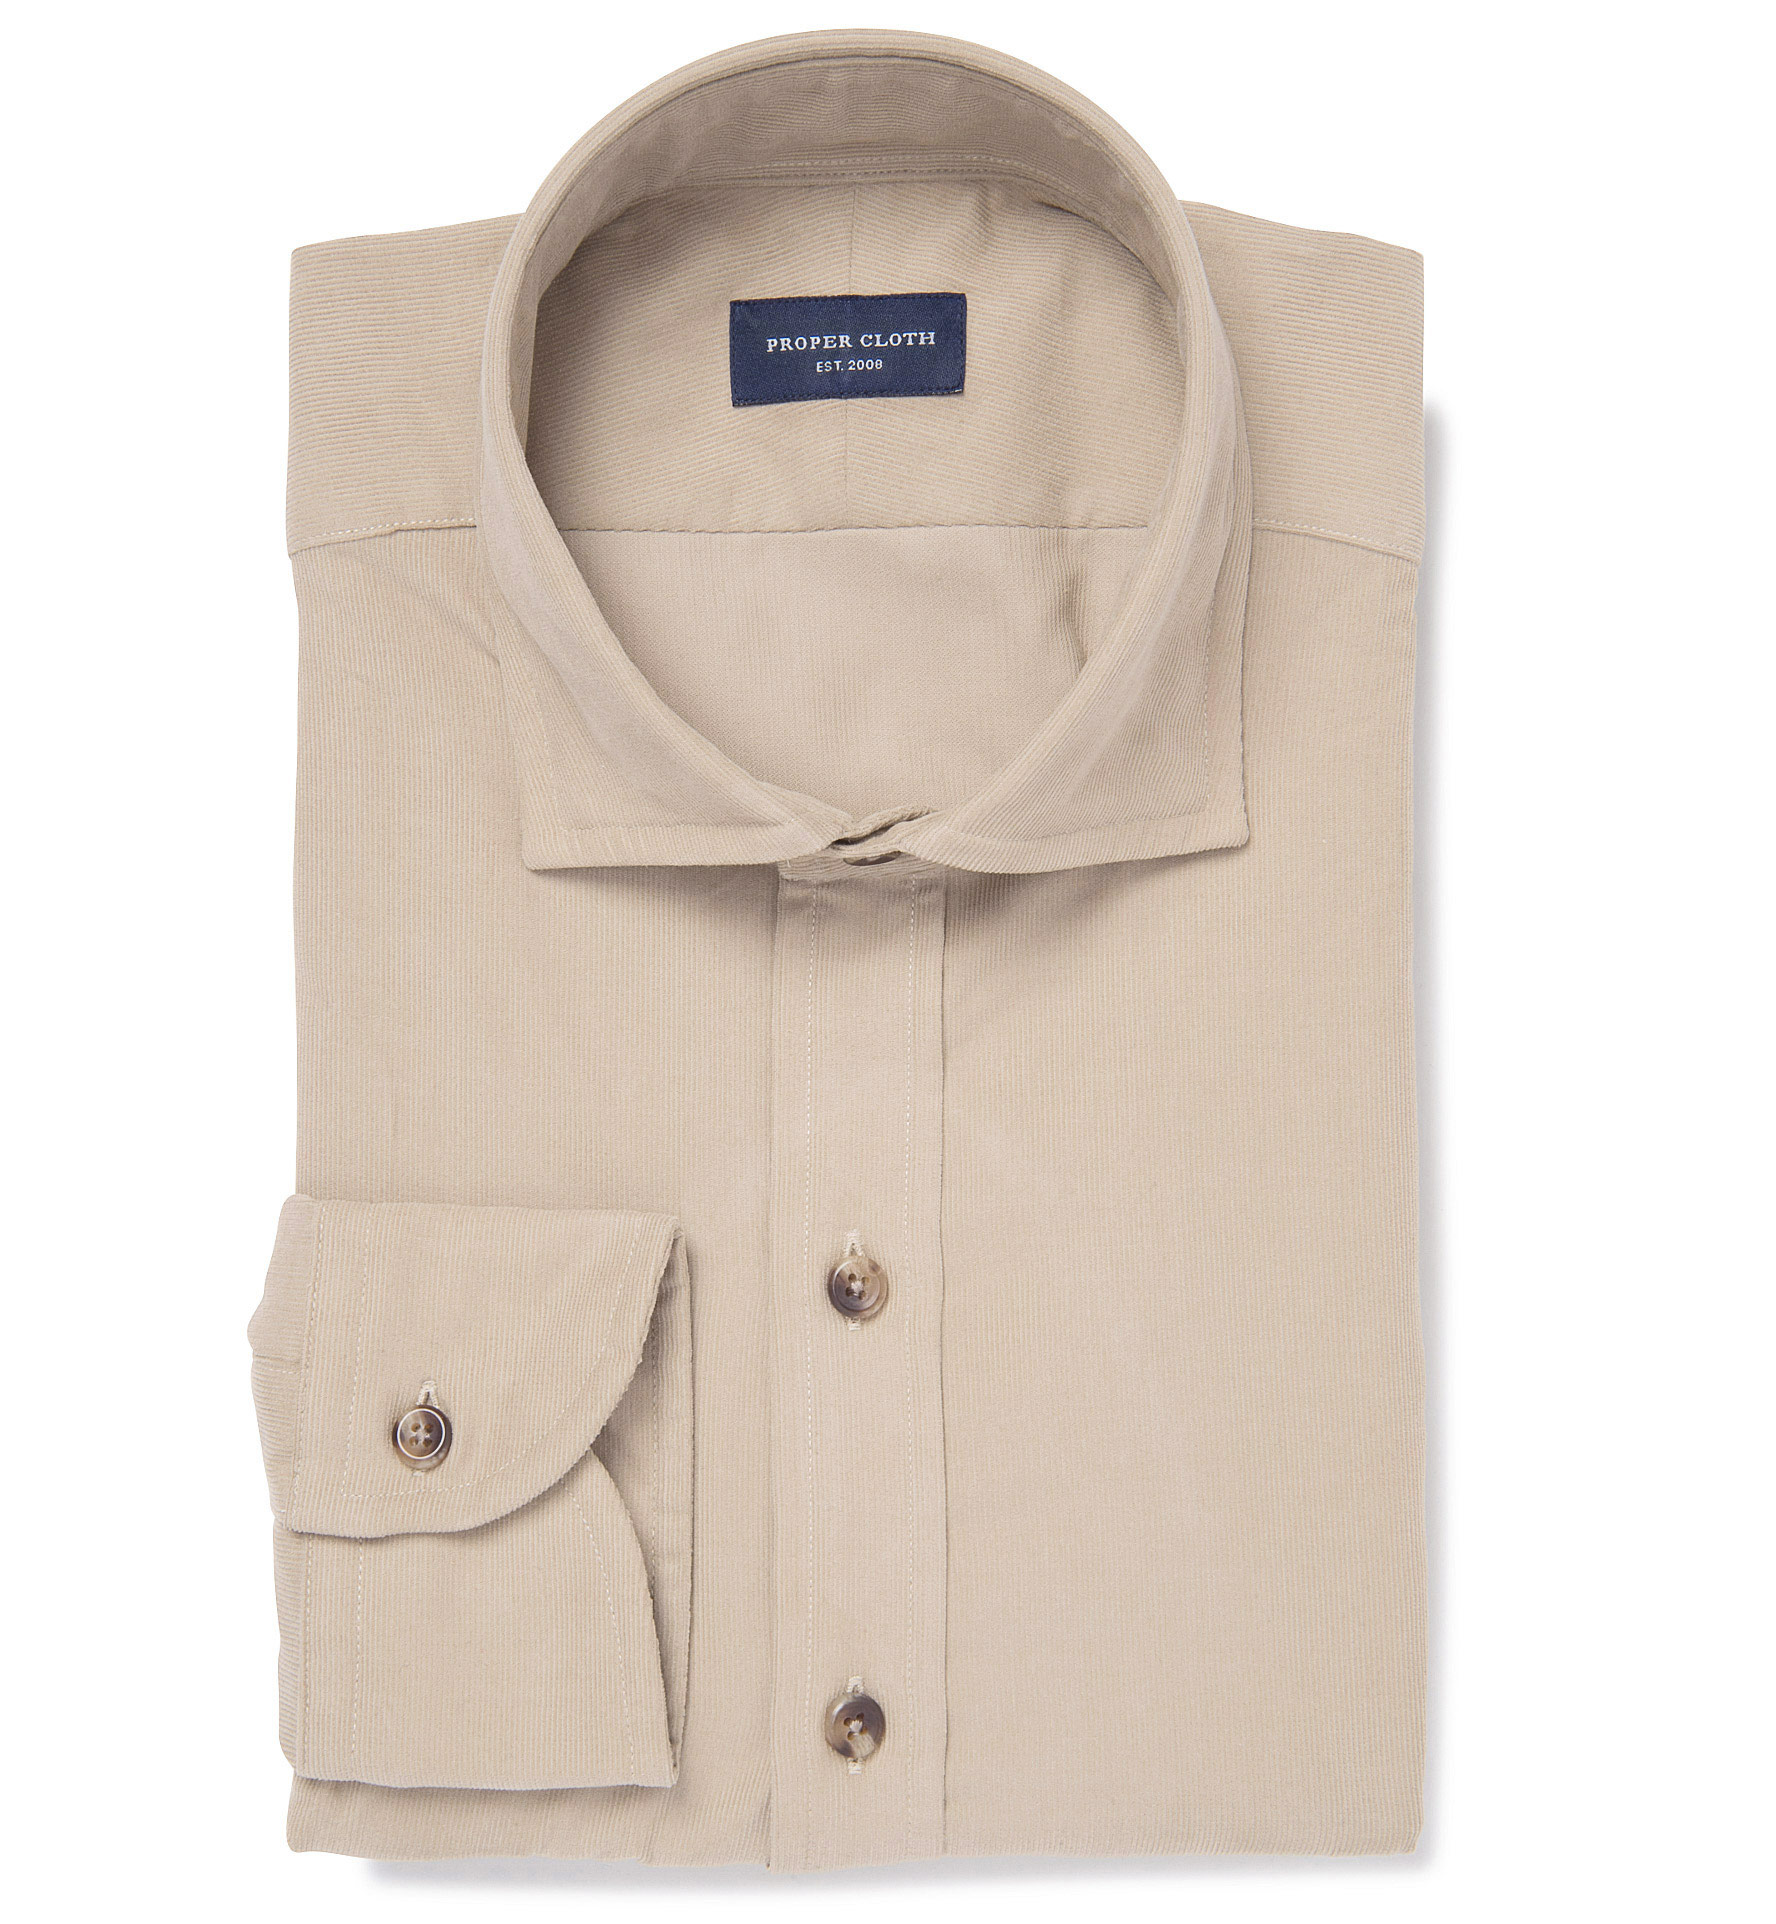 Albini tan fine corduroy men 39 s dress shirt by proper cloth for Proper cloth custom shirt price